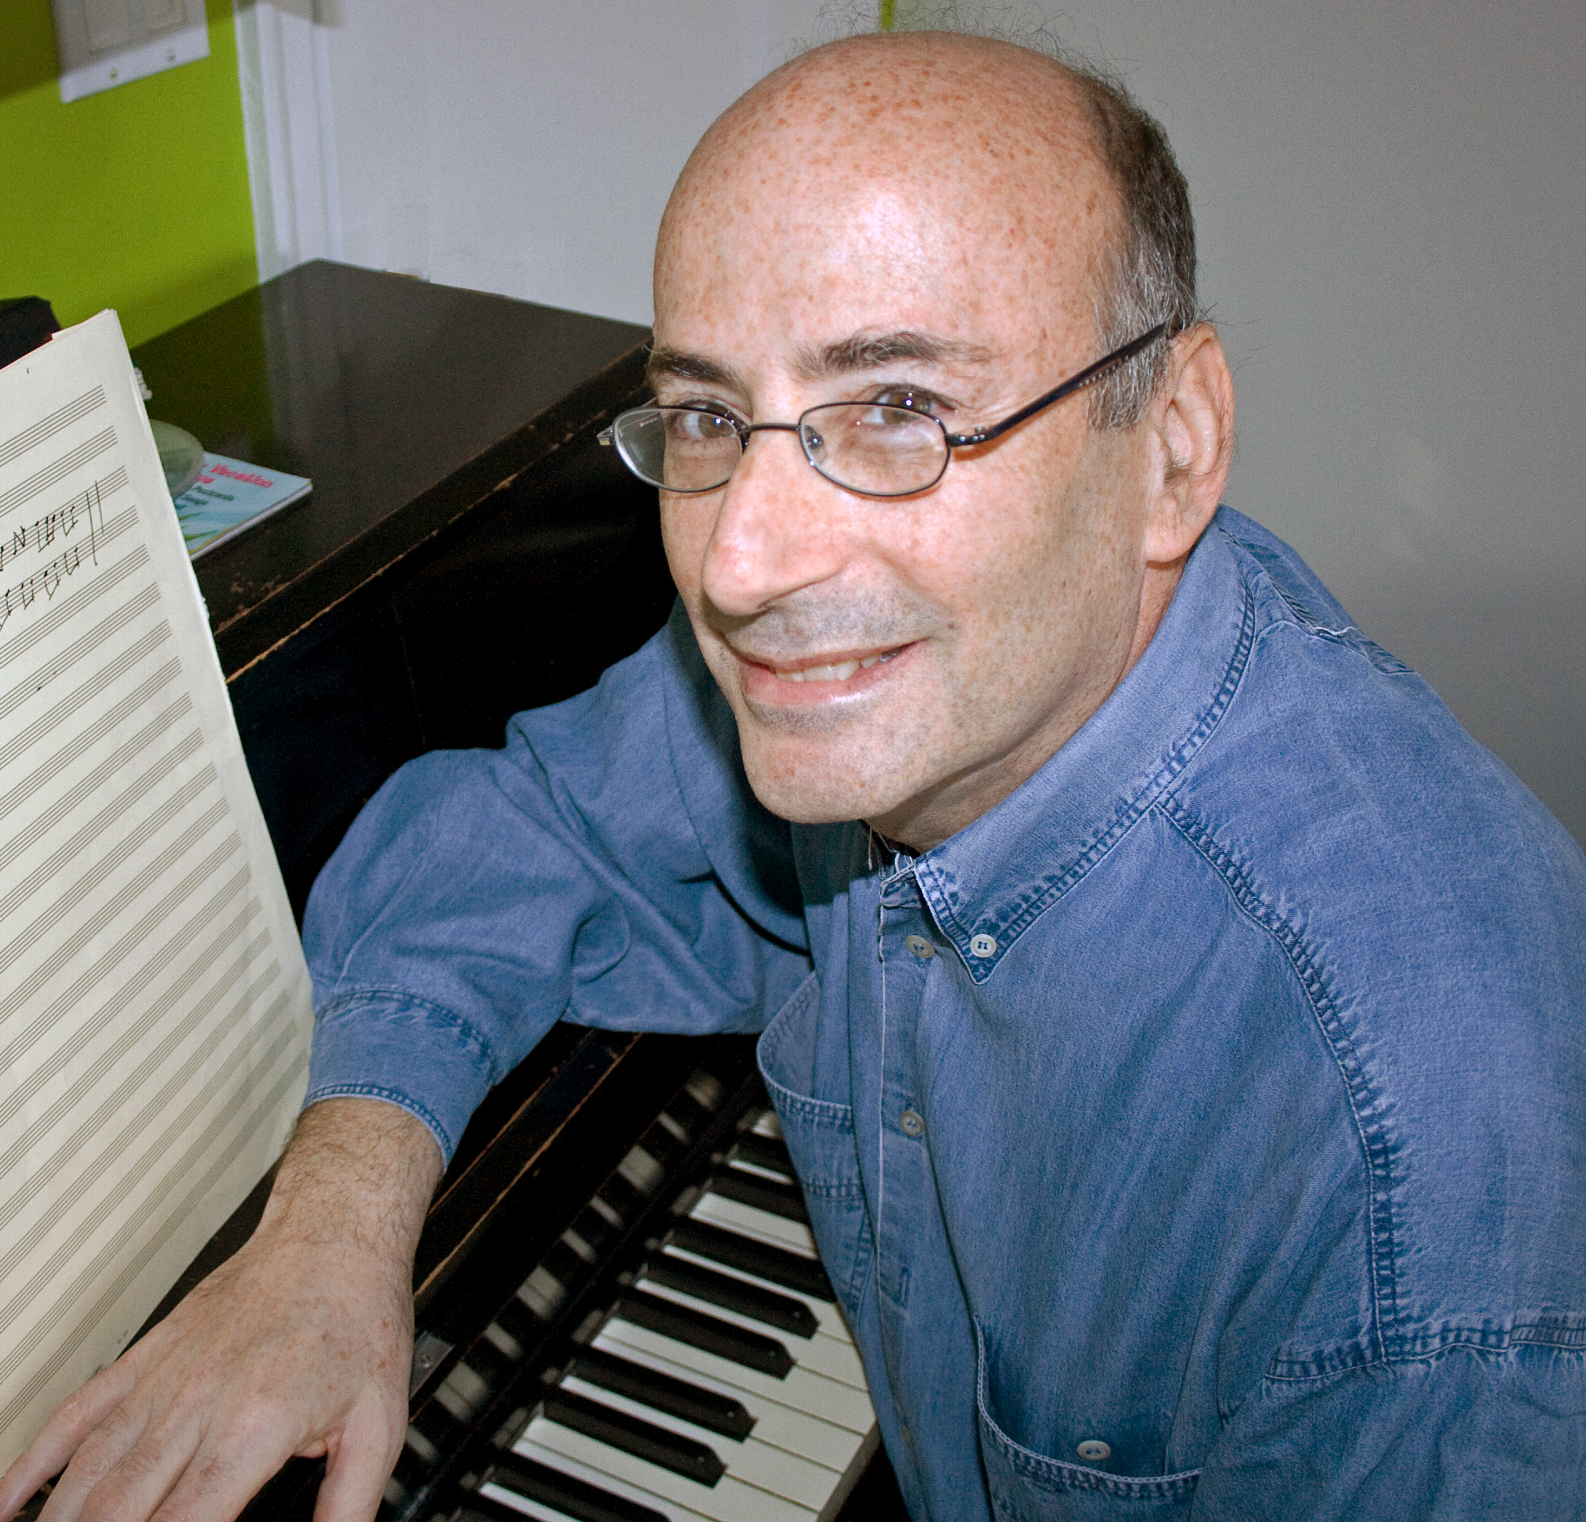 Entrevista a Richard Einhorn, compositor de Voices of Light/...